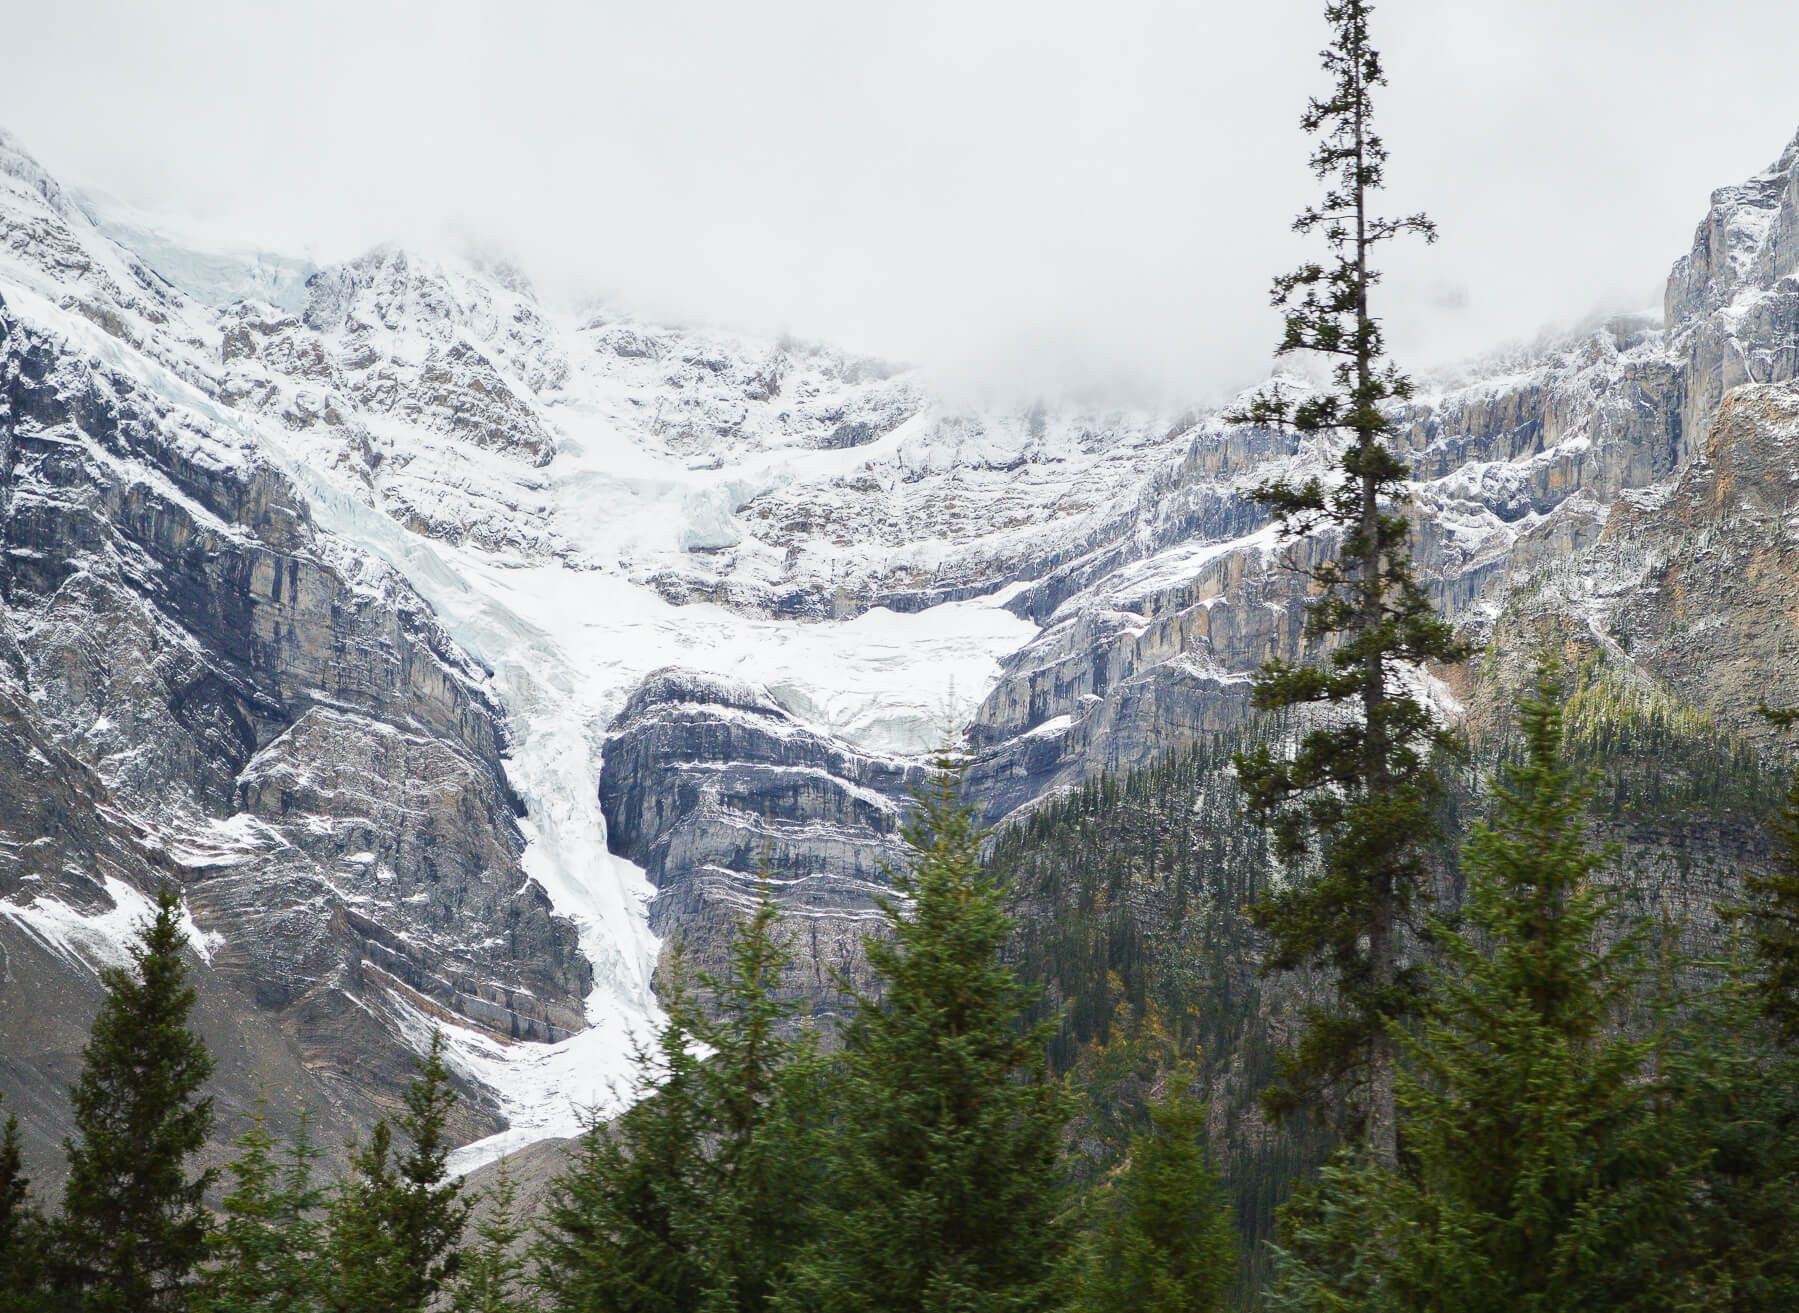 Pine trees in front of glacier on Rocky Mountain